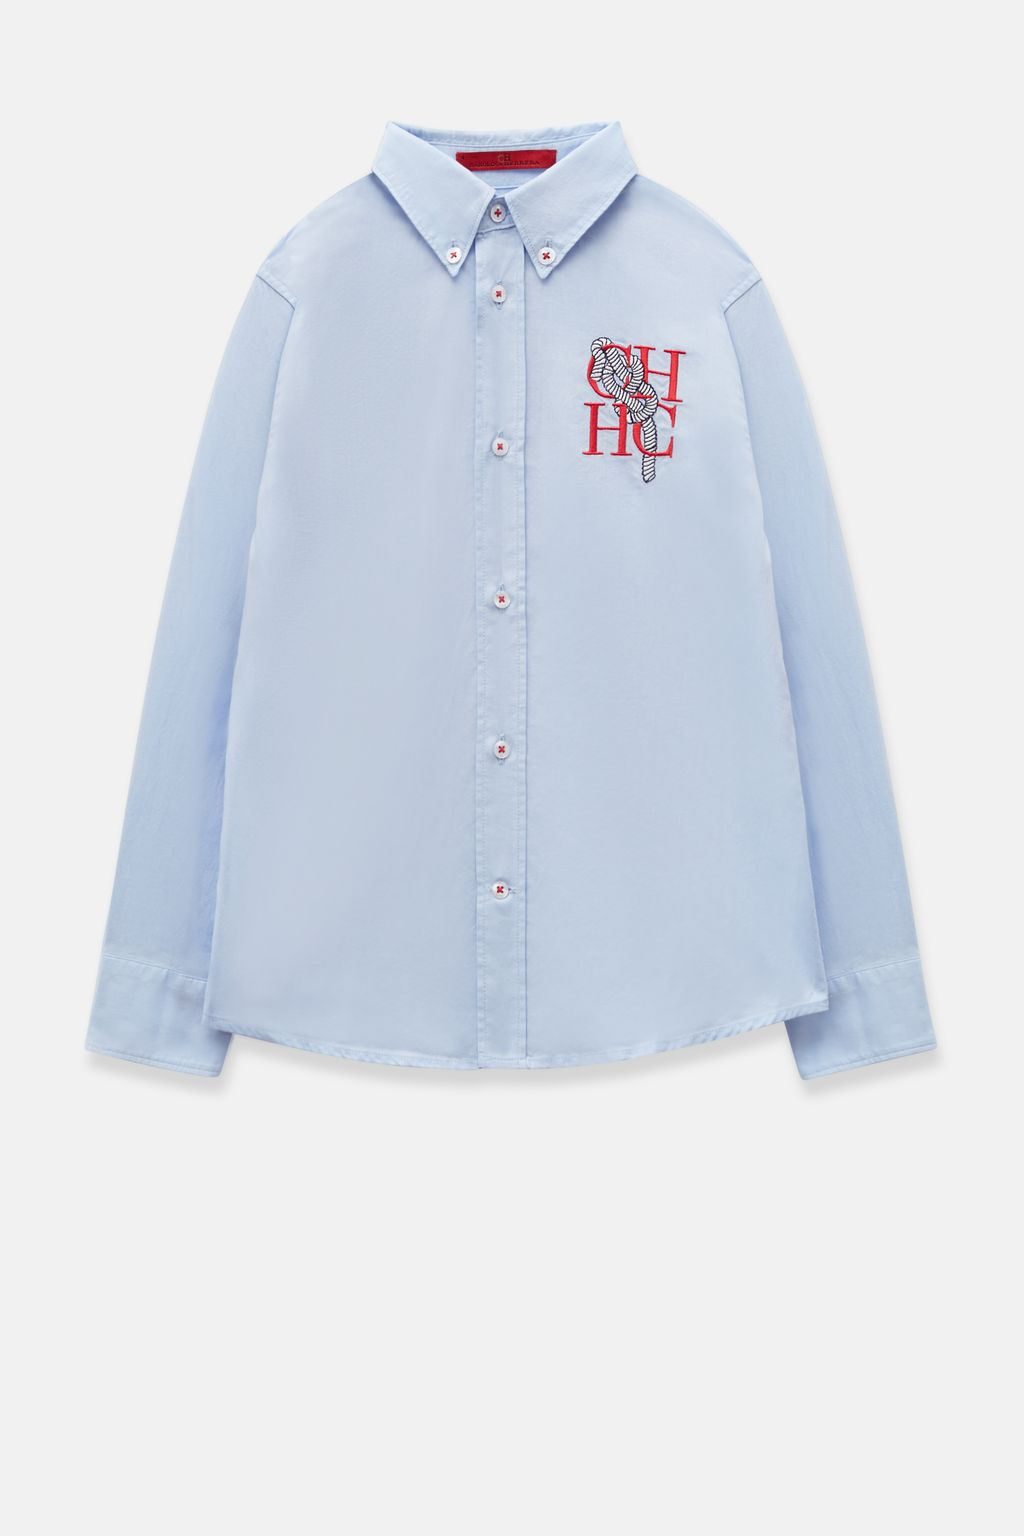 Oxford shirt with sailor embroidery